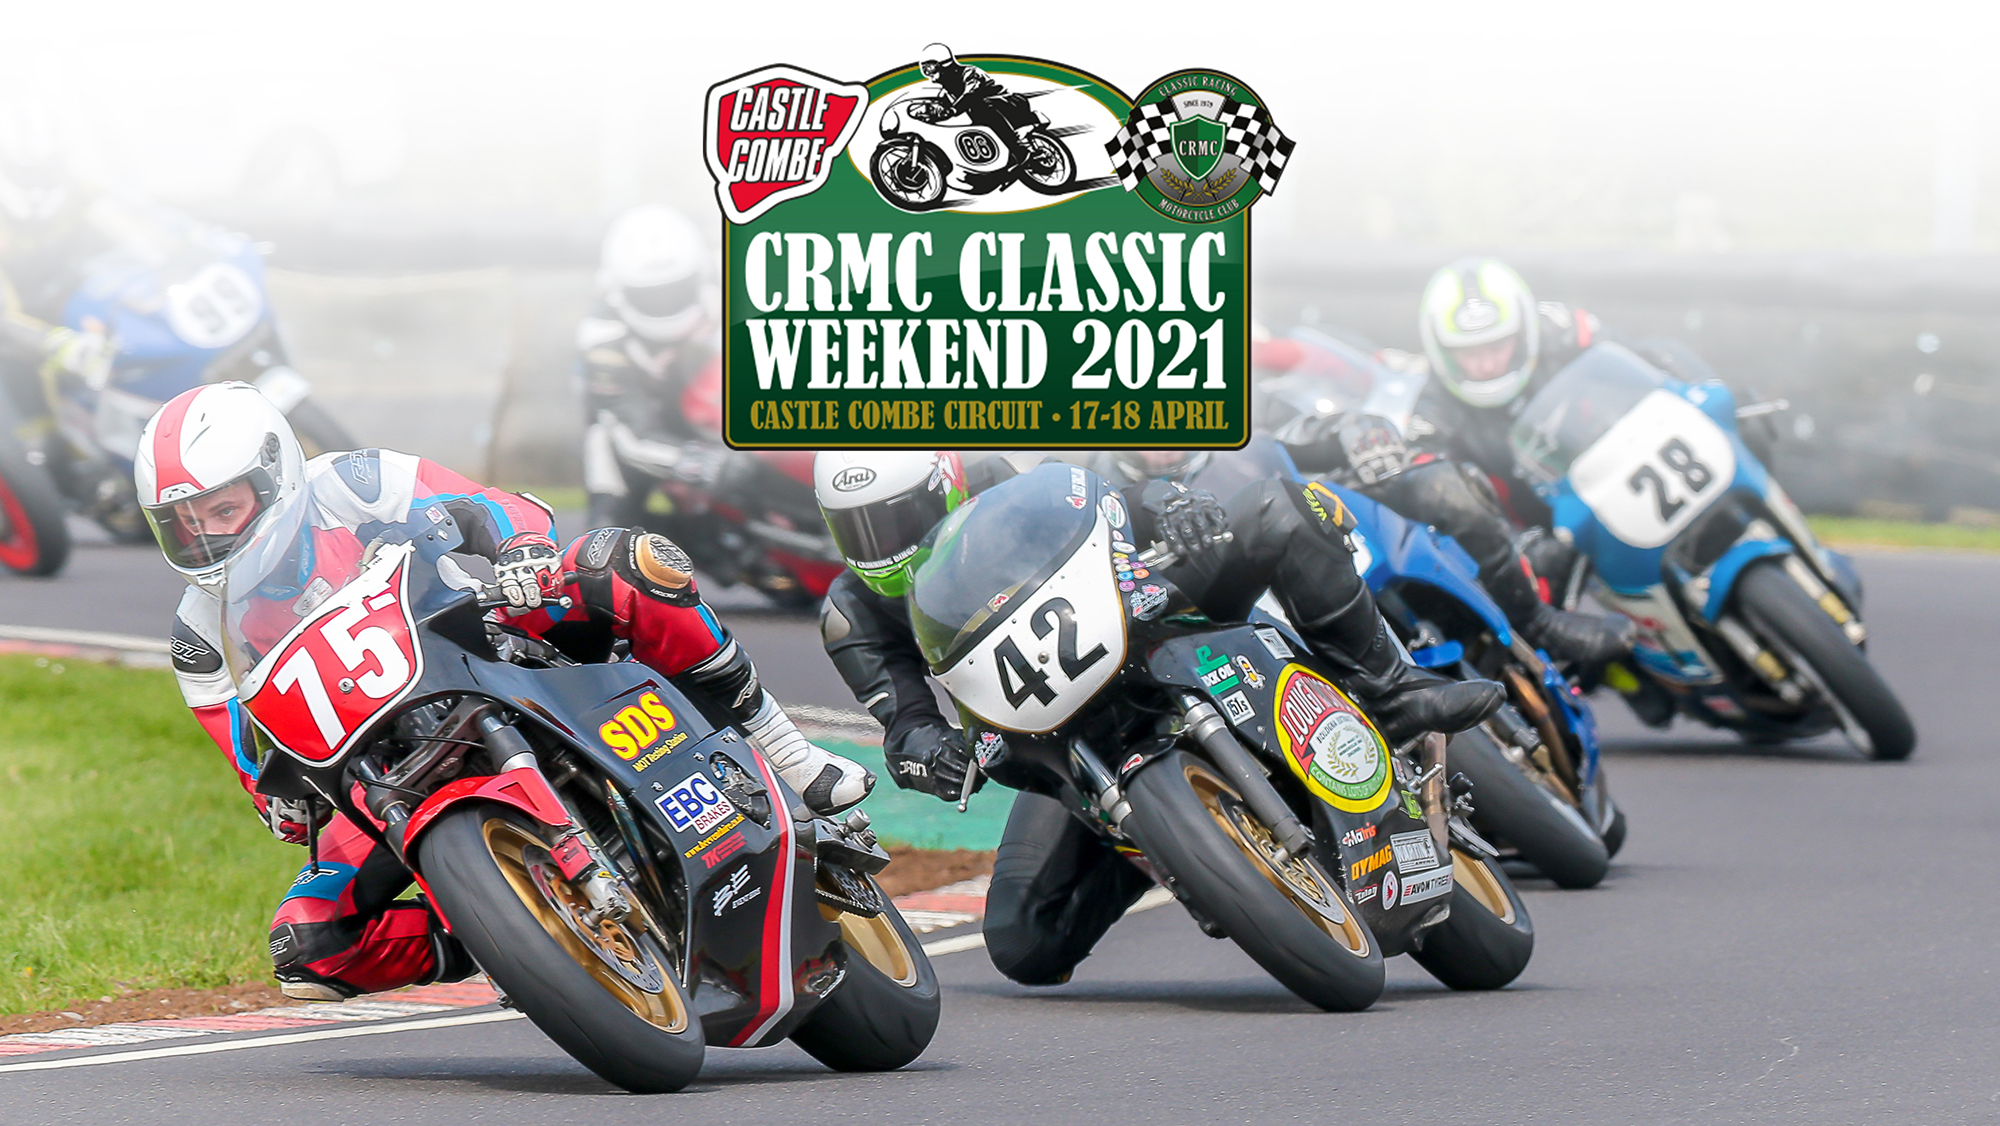 CRMC CLASSIC BIKE RACING WEEKEND TO DESCEND ON CASTLE COMBE CIRCUIT THIS SPRING